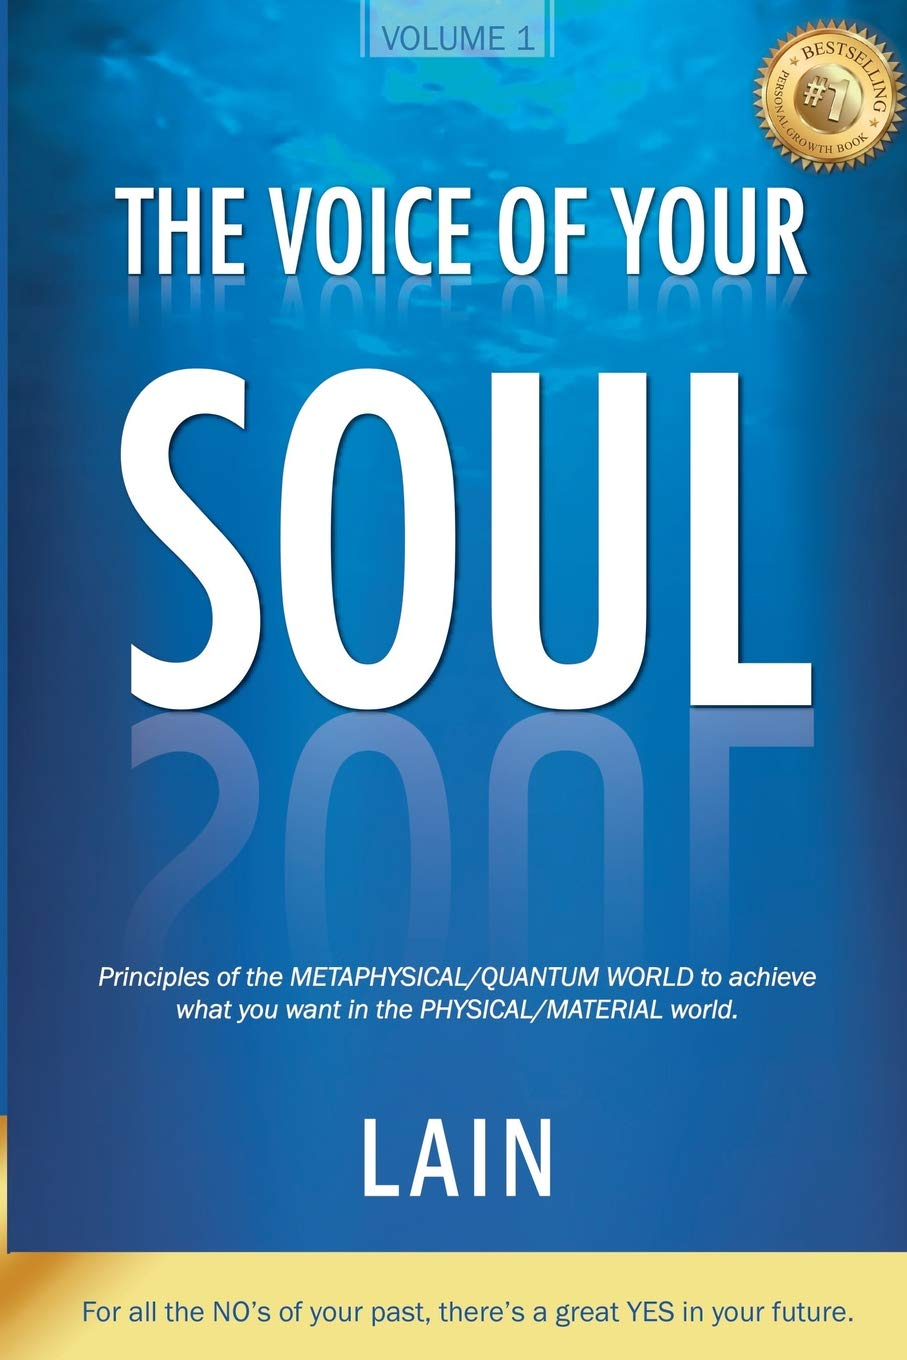 The Voice of your Soul: Volume 1: Amazon.es: Garcia Calvo, Lain ...